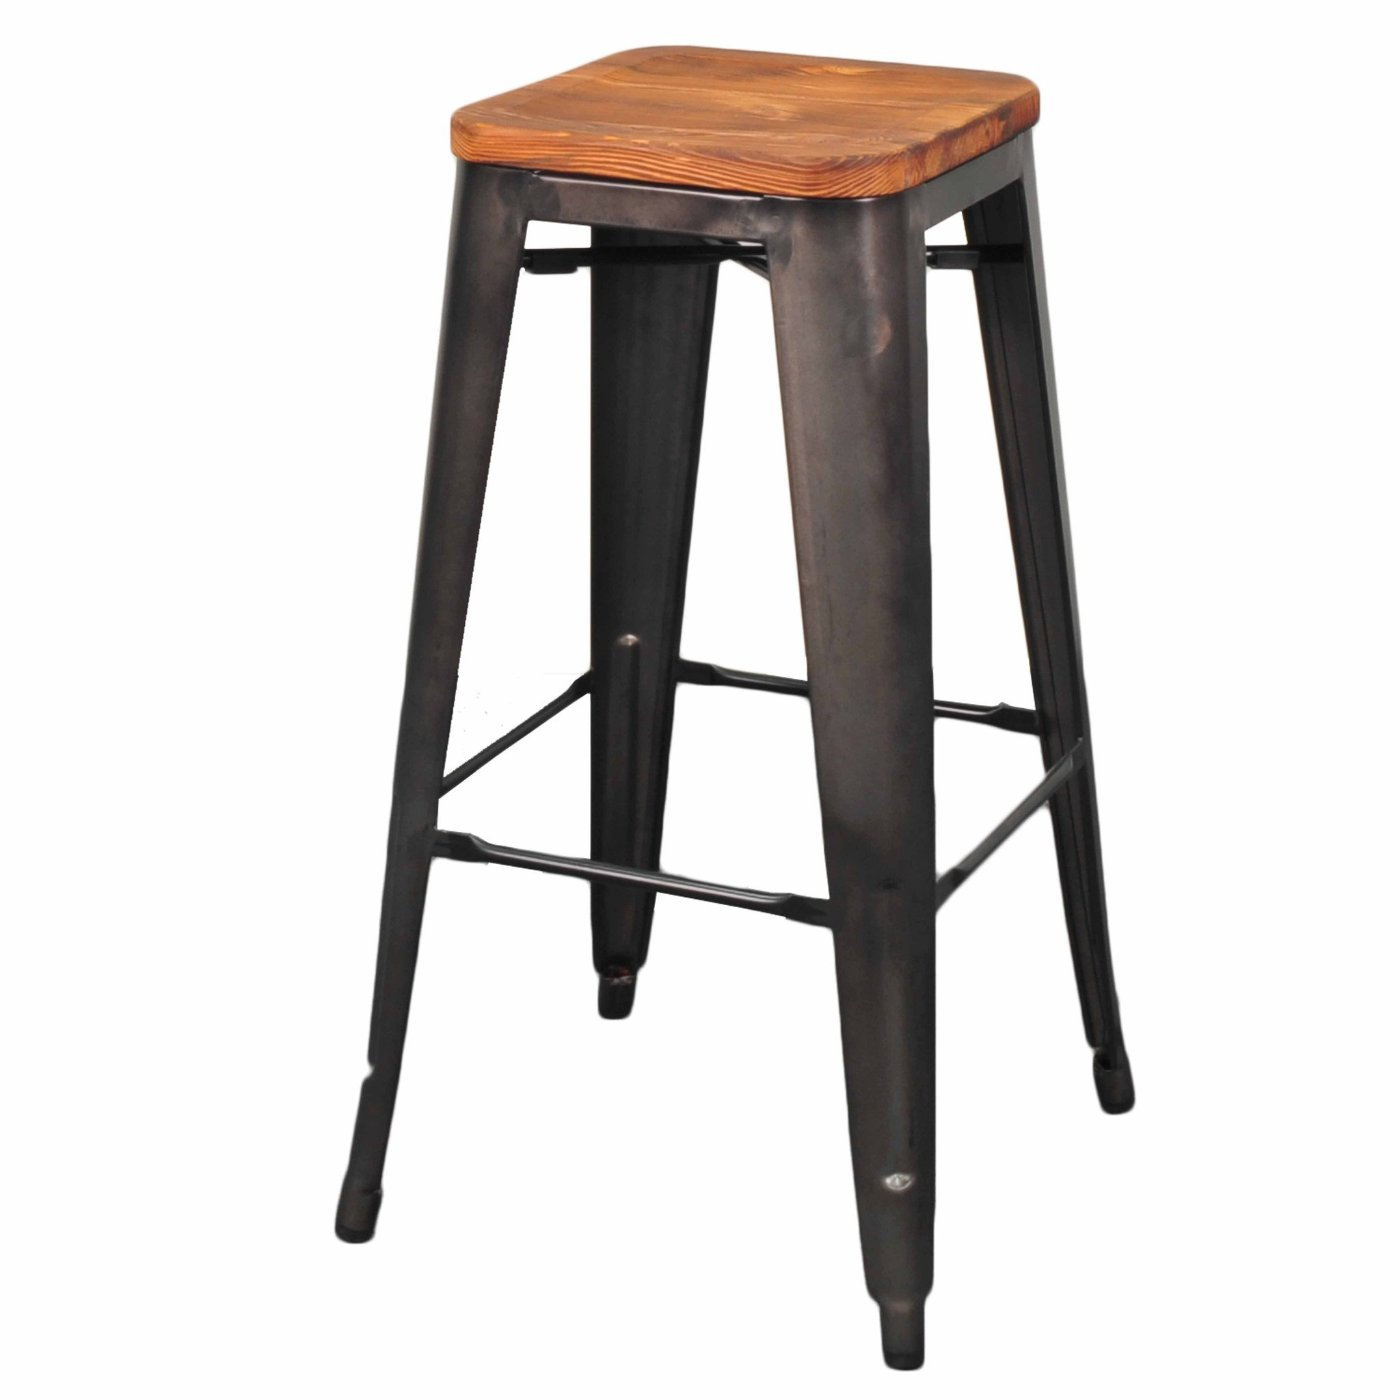 Grand Metal Bar Stool- Set of 4 GUNMETAL